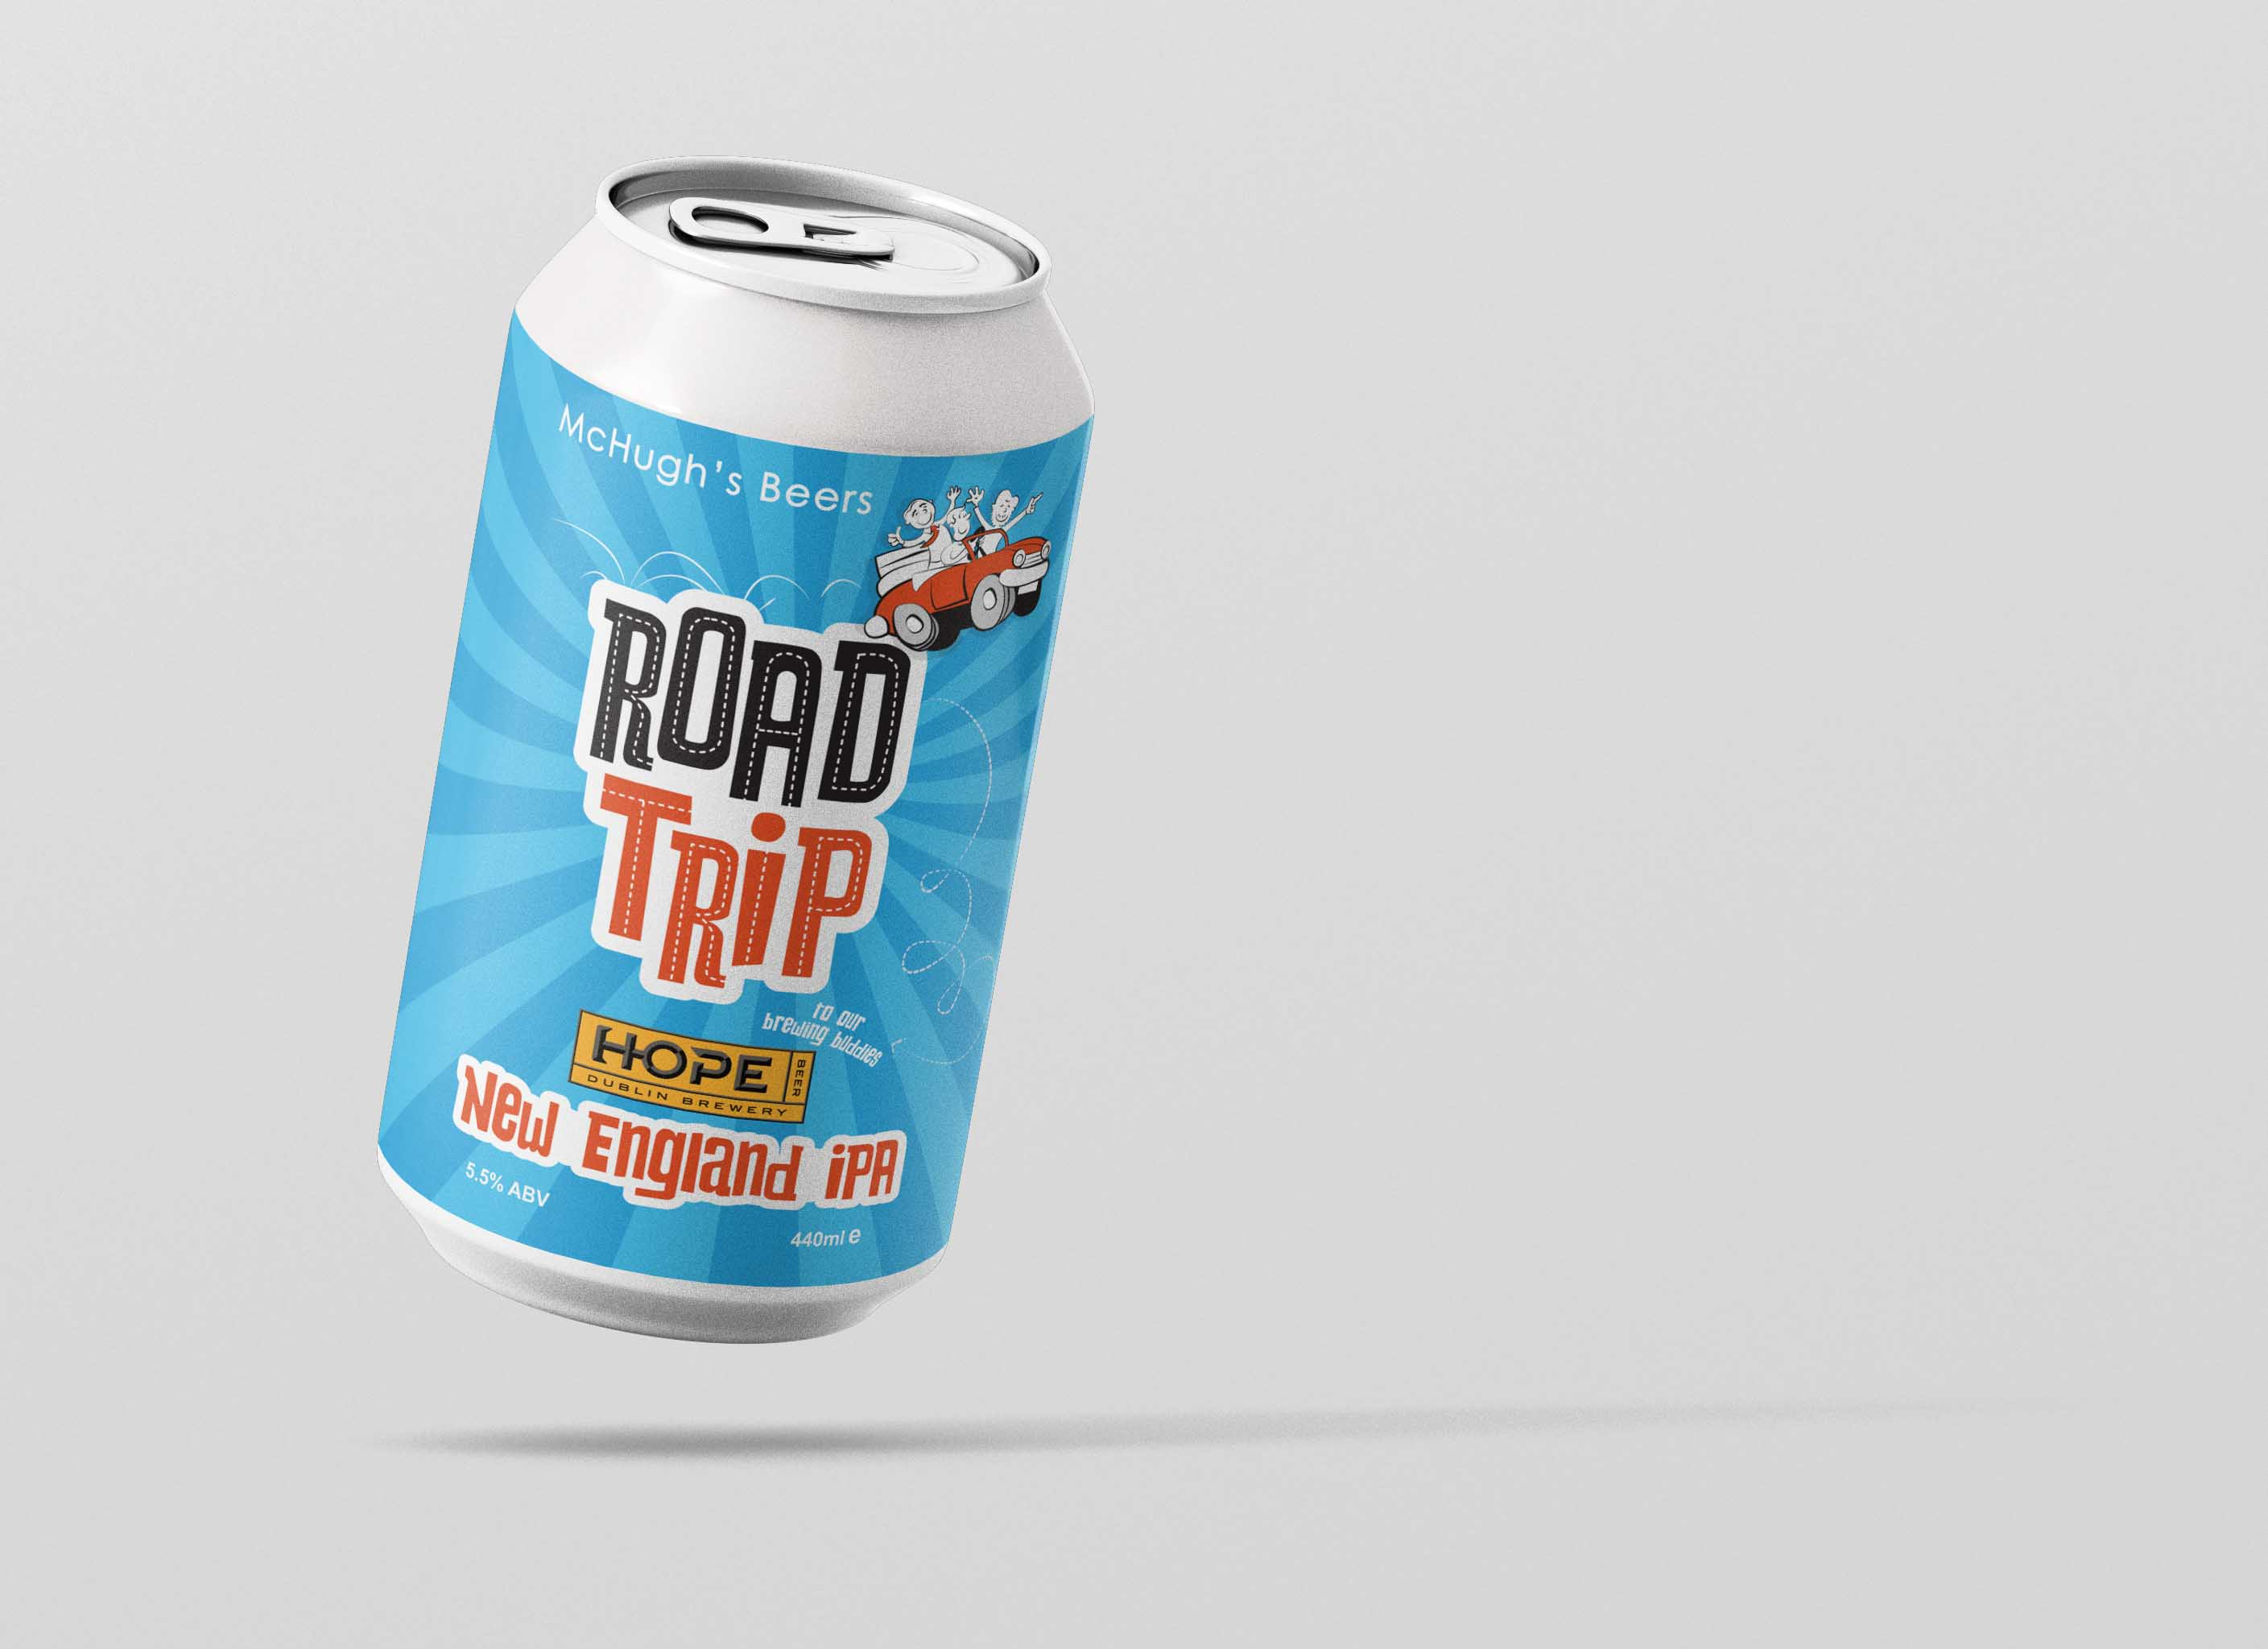 Mc Hughs RoadTrip Beer Label Design Dublin